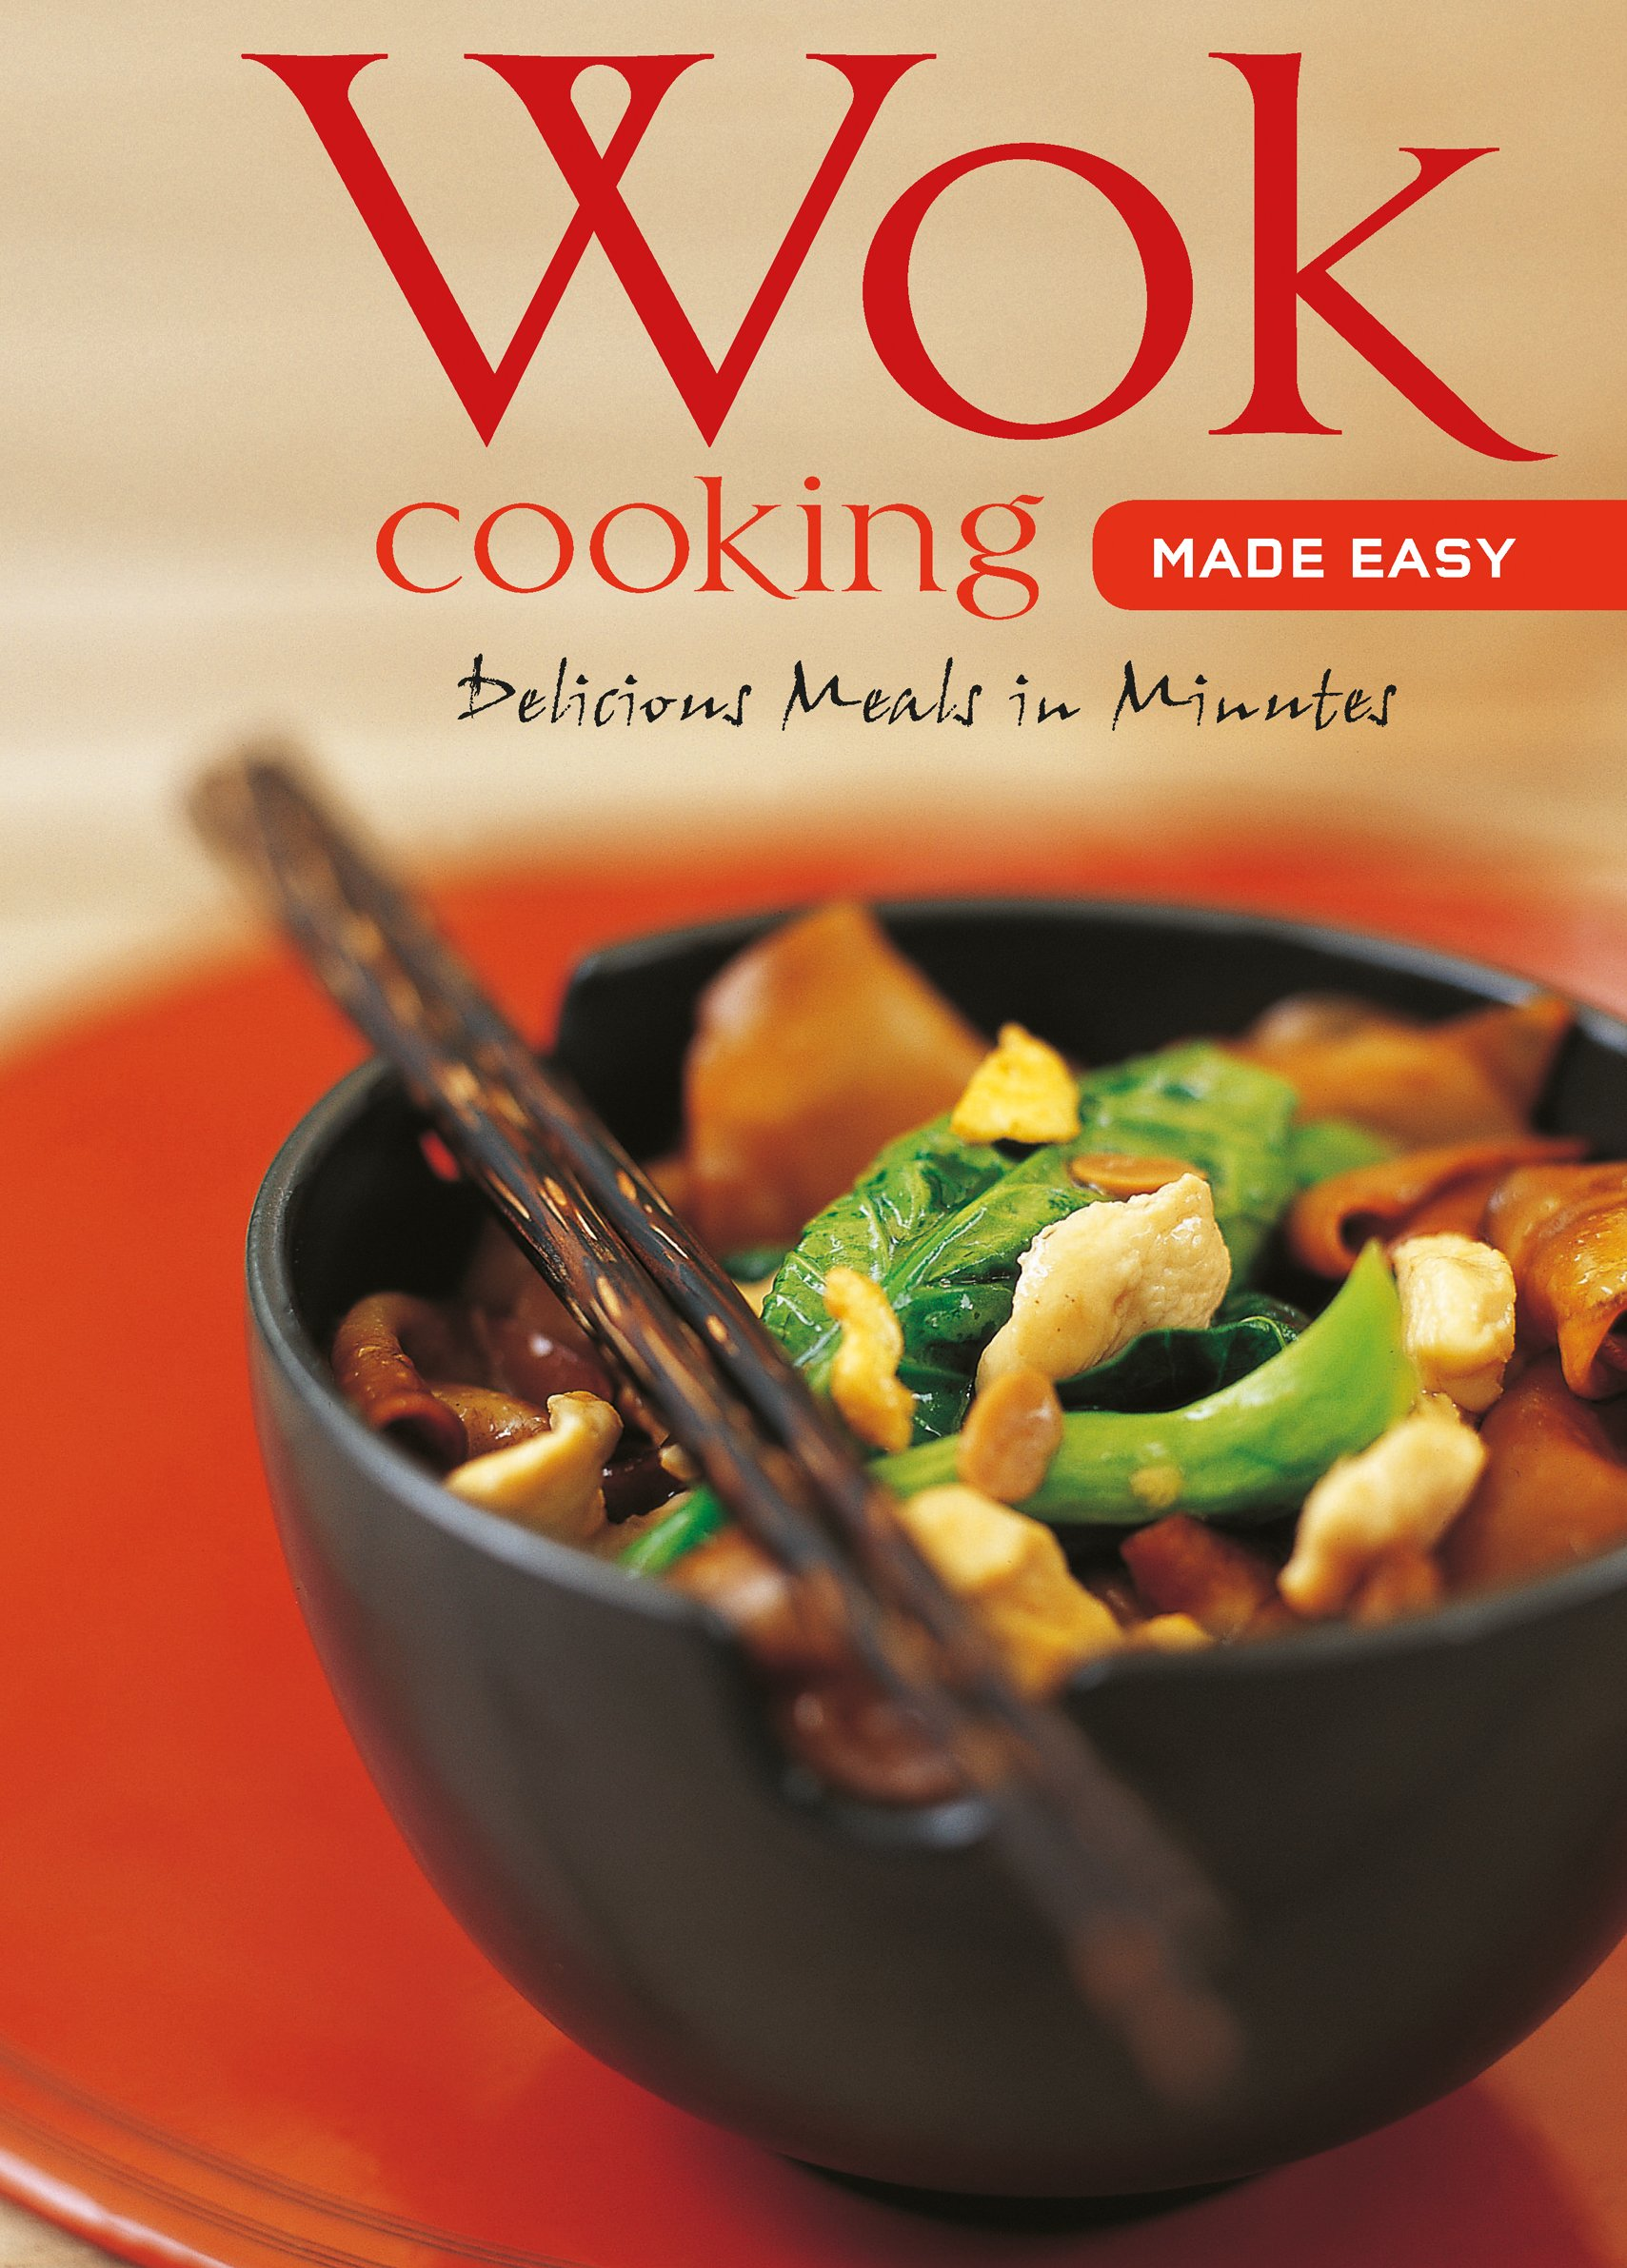 Wok Cooking Made Easy Delicious product image